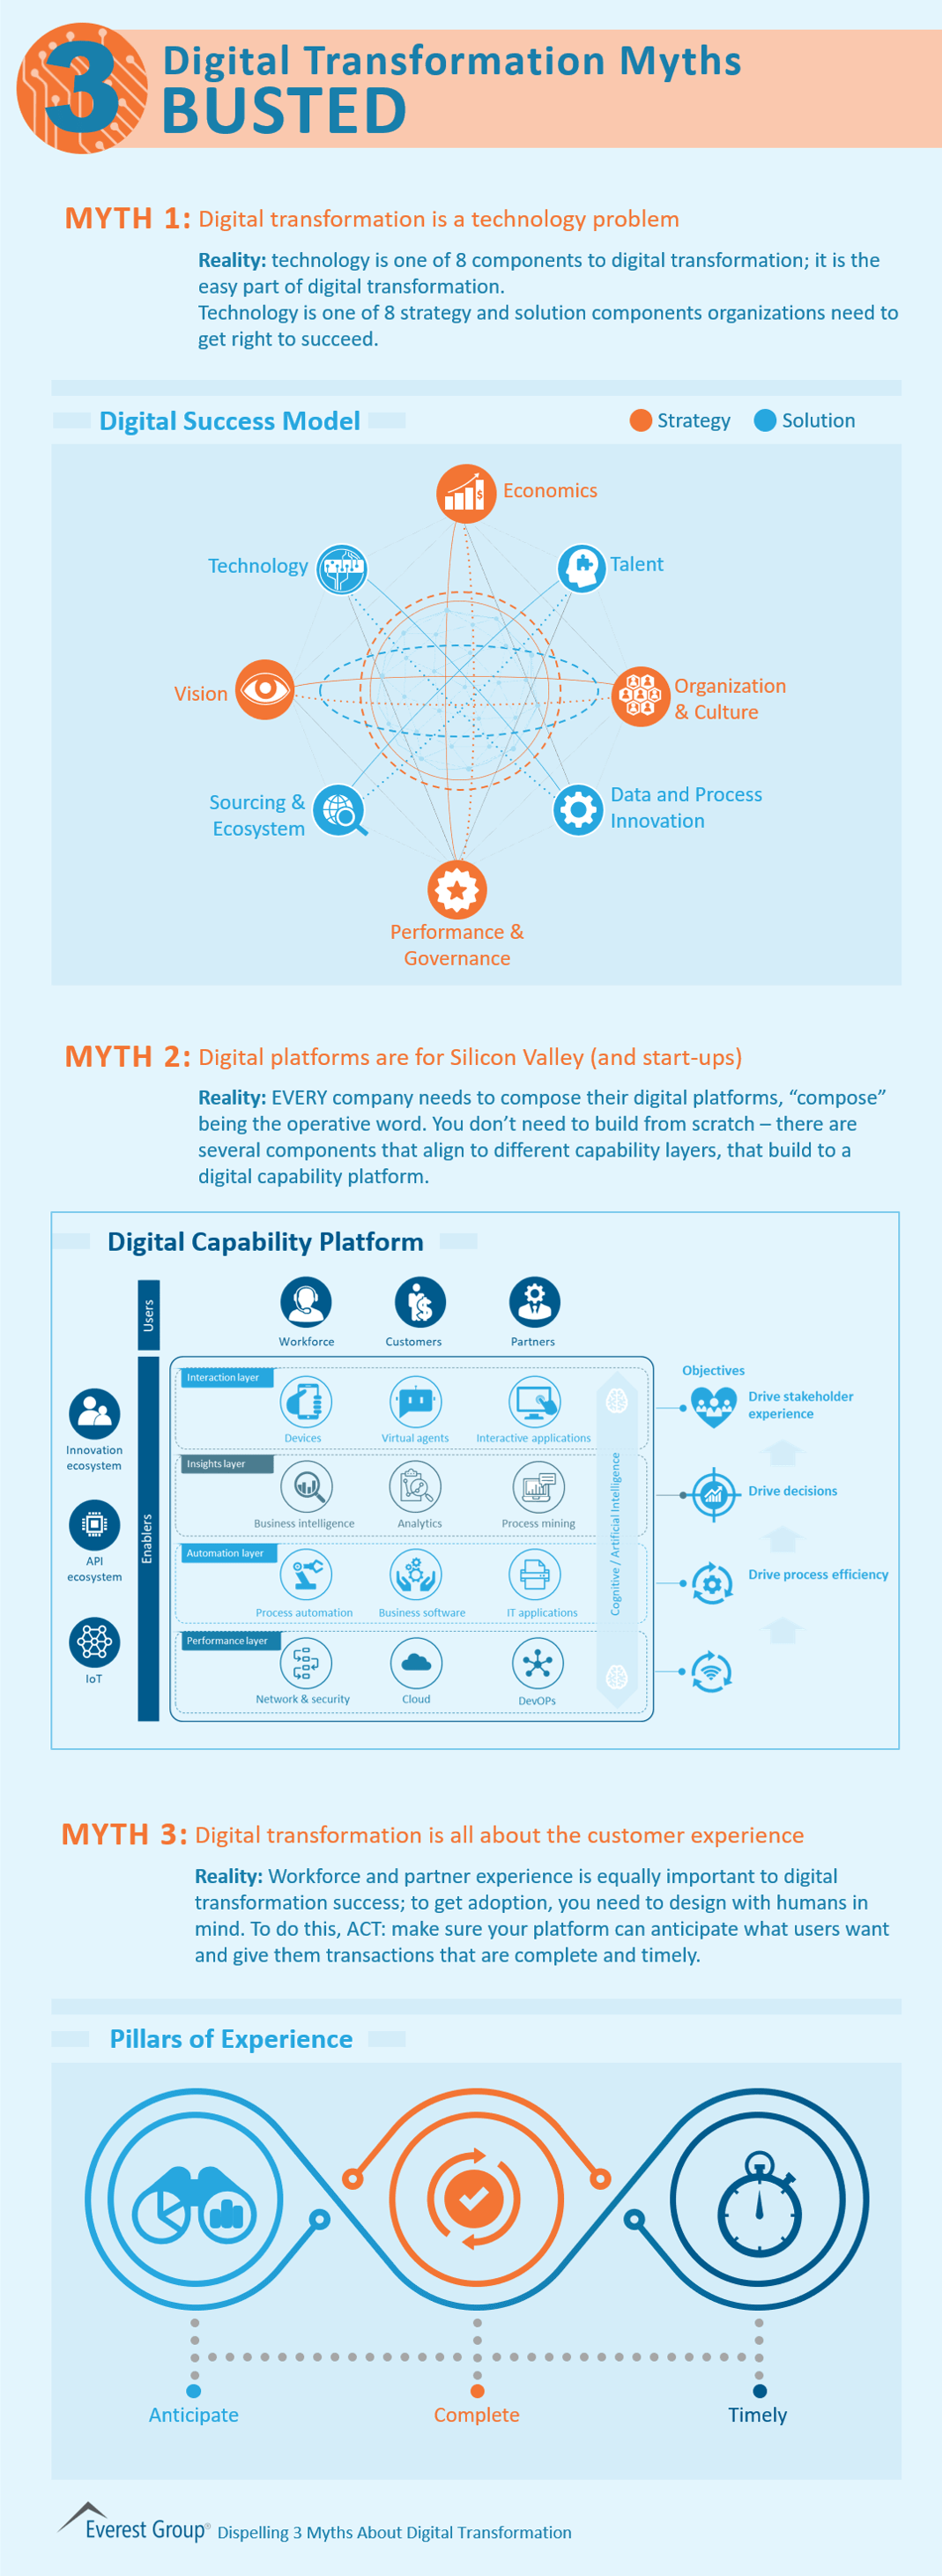 Busting Digital Transformation Myths 2019